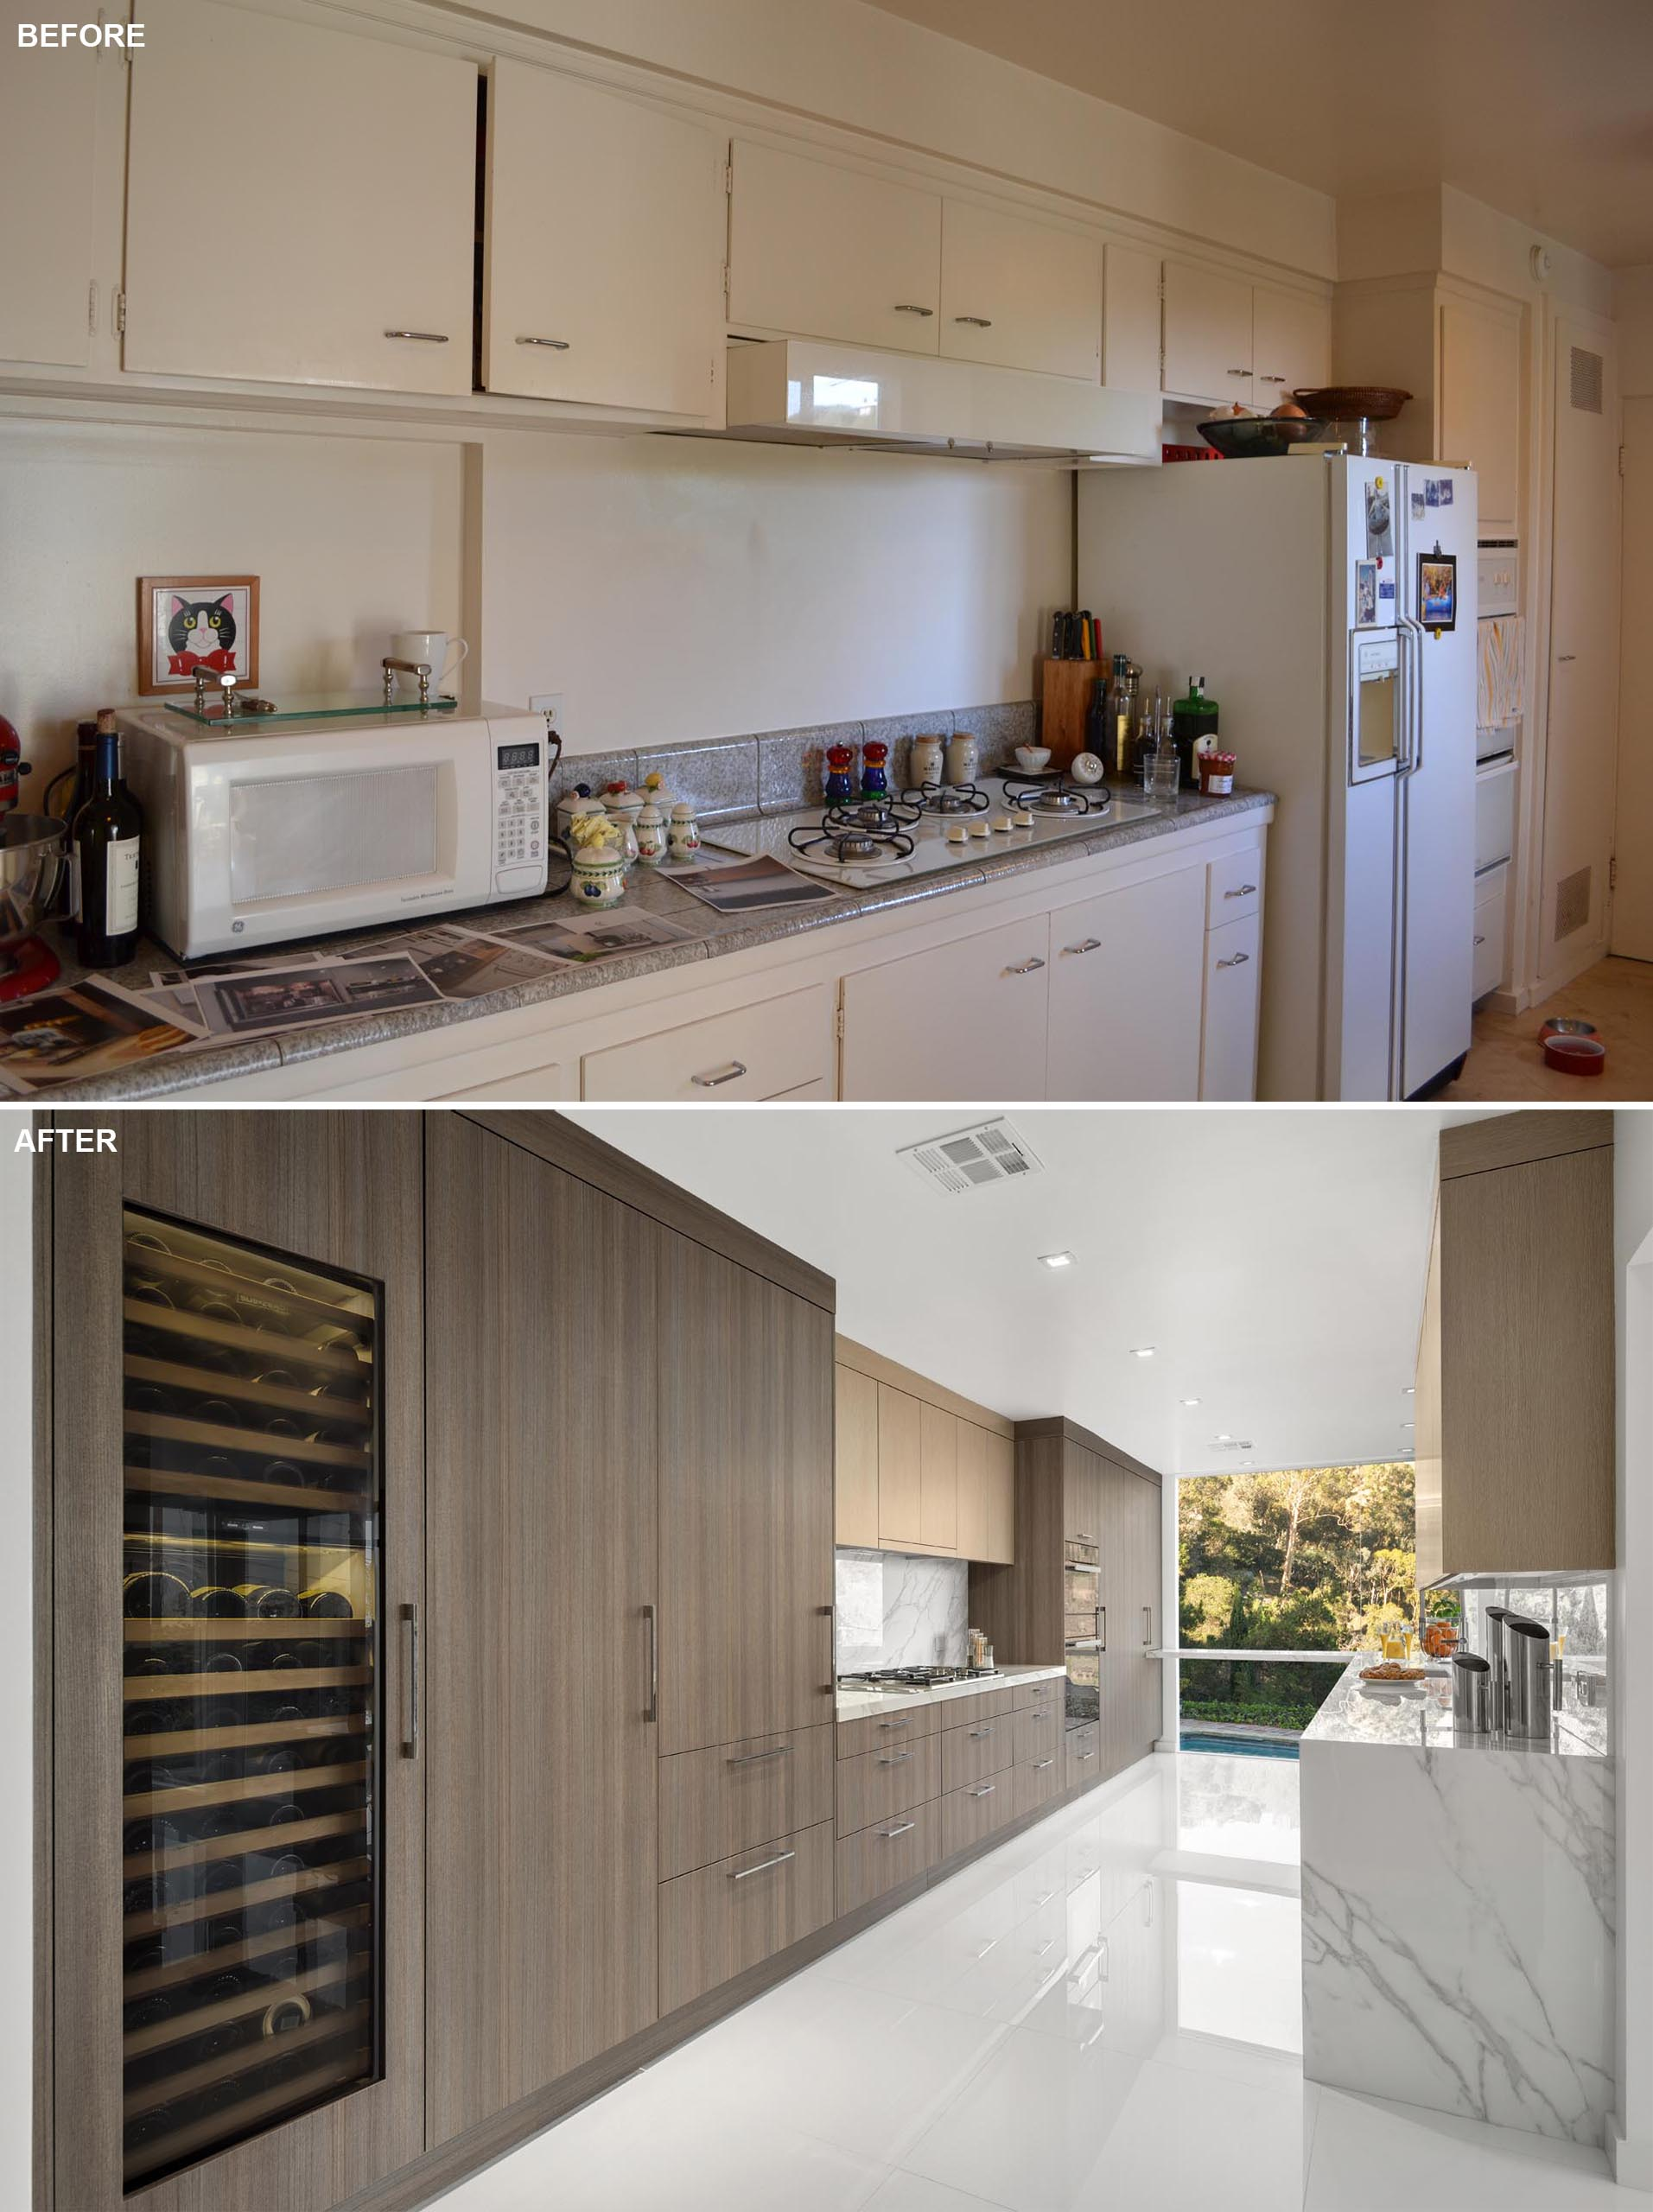 This updated kitchen includes a wall of floor-to-ceiling cabinetry that integrates the fridge and a wine refrigerator.